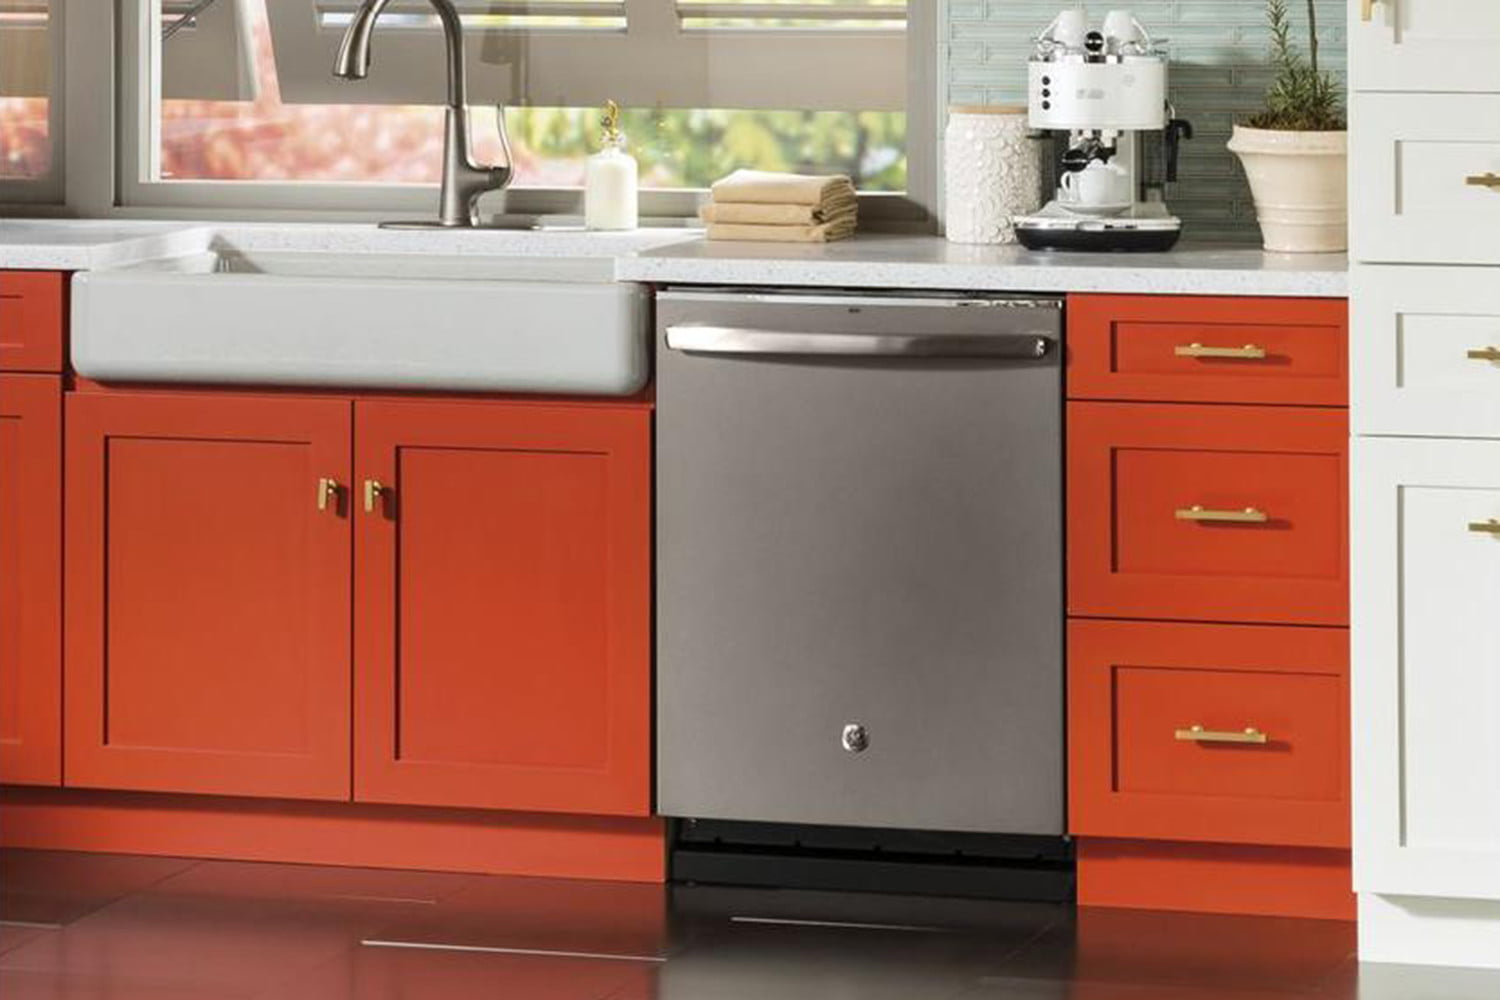 The best dishwashers for 2019